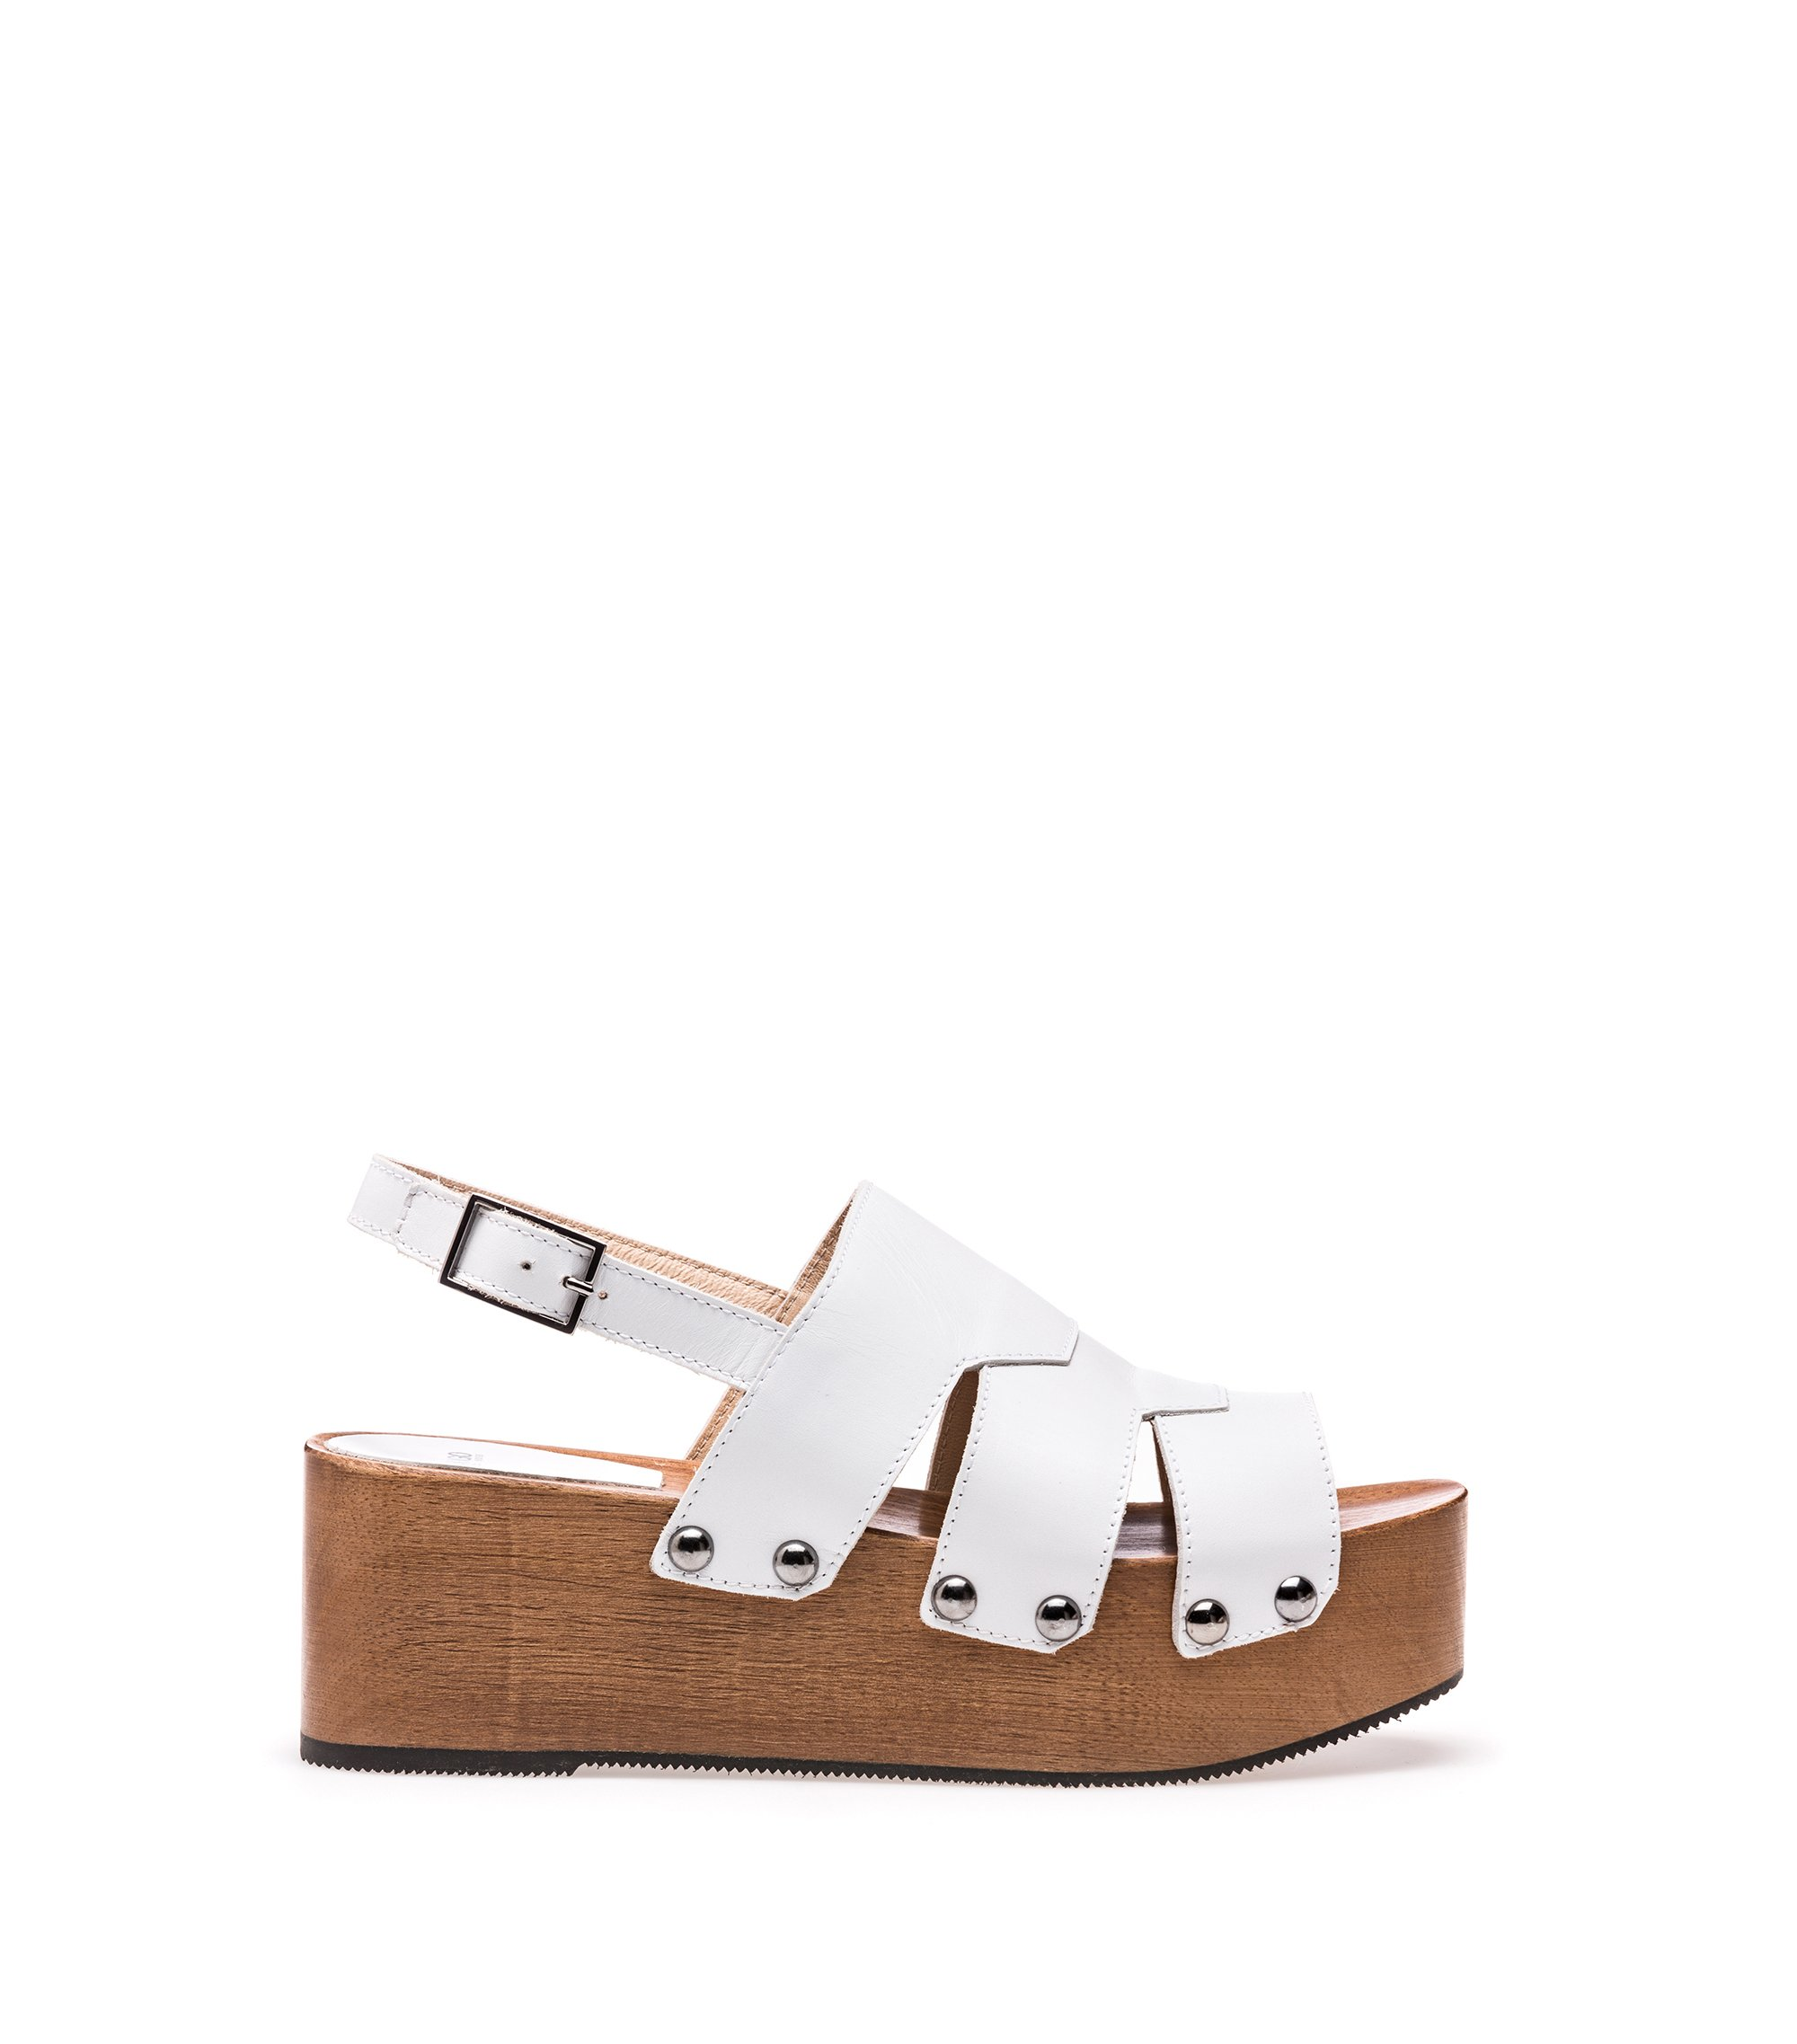 Leather platform sandals with stud detailing, White